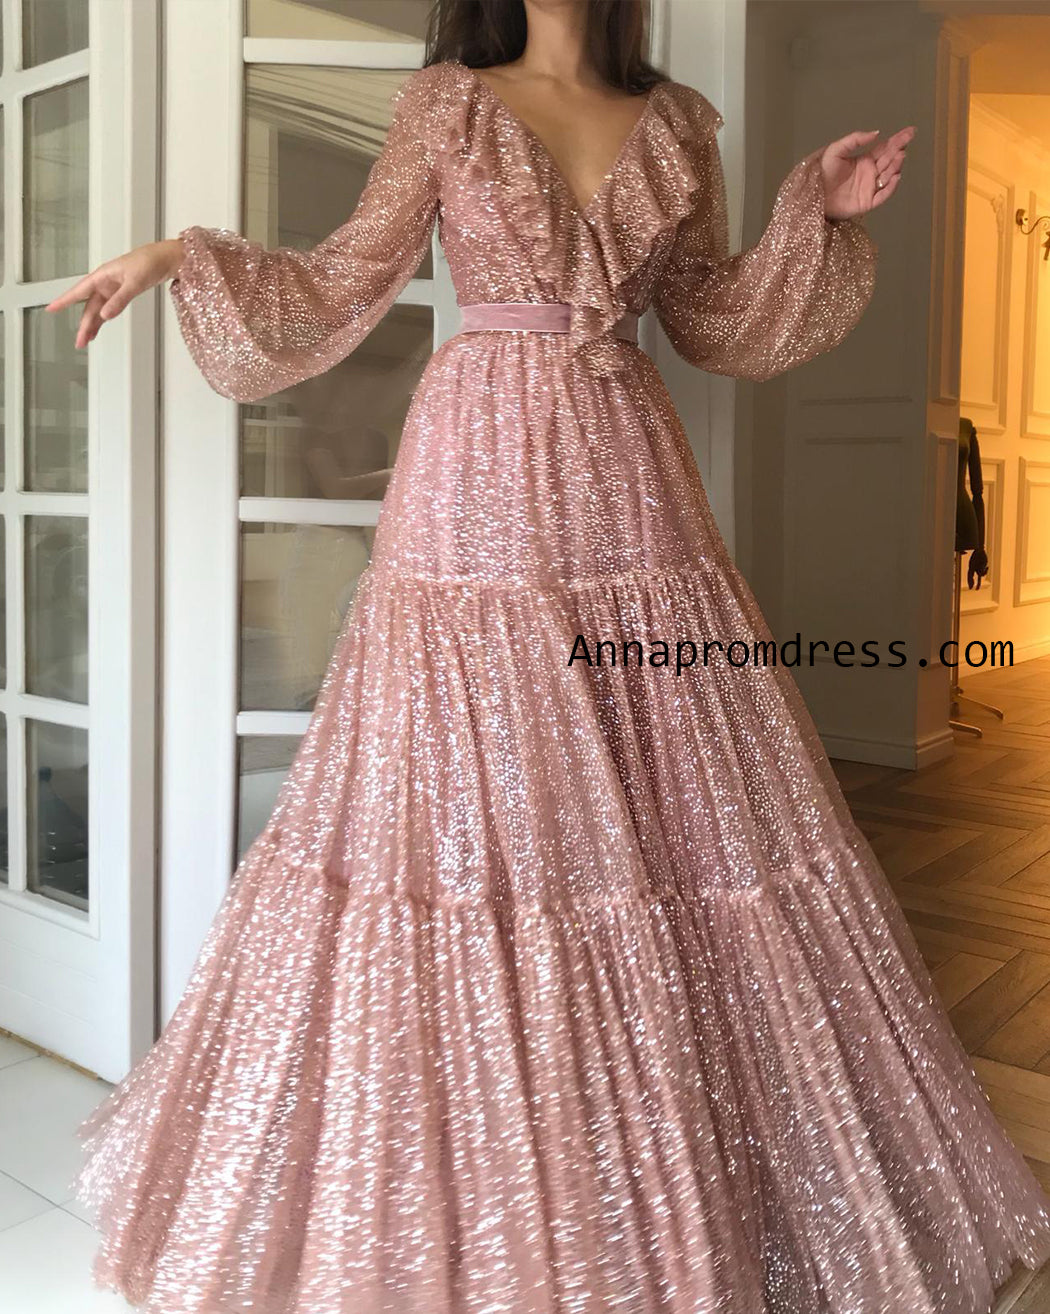 Sparkly Prom Dresses Long Sexy V Neck Long Sleeve Rose Gold Unique Prom/Evening Dress YSD336|Annapromdress